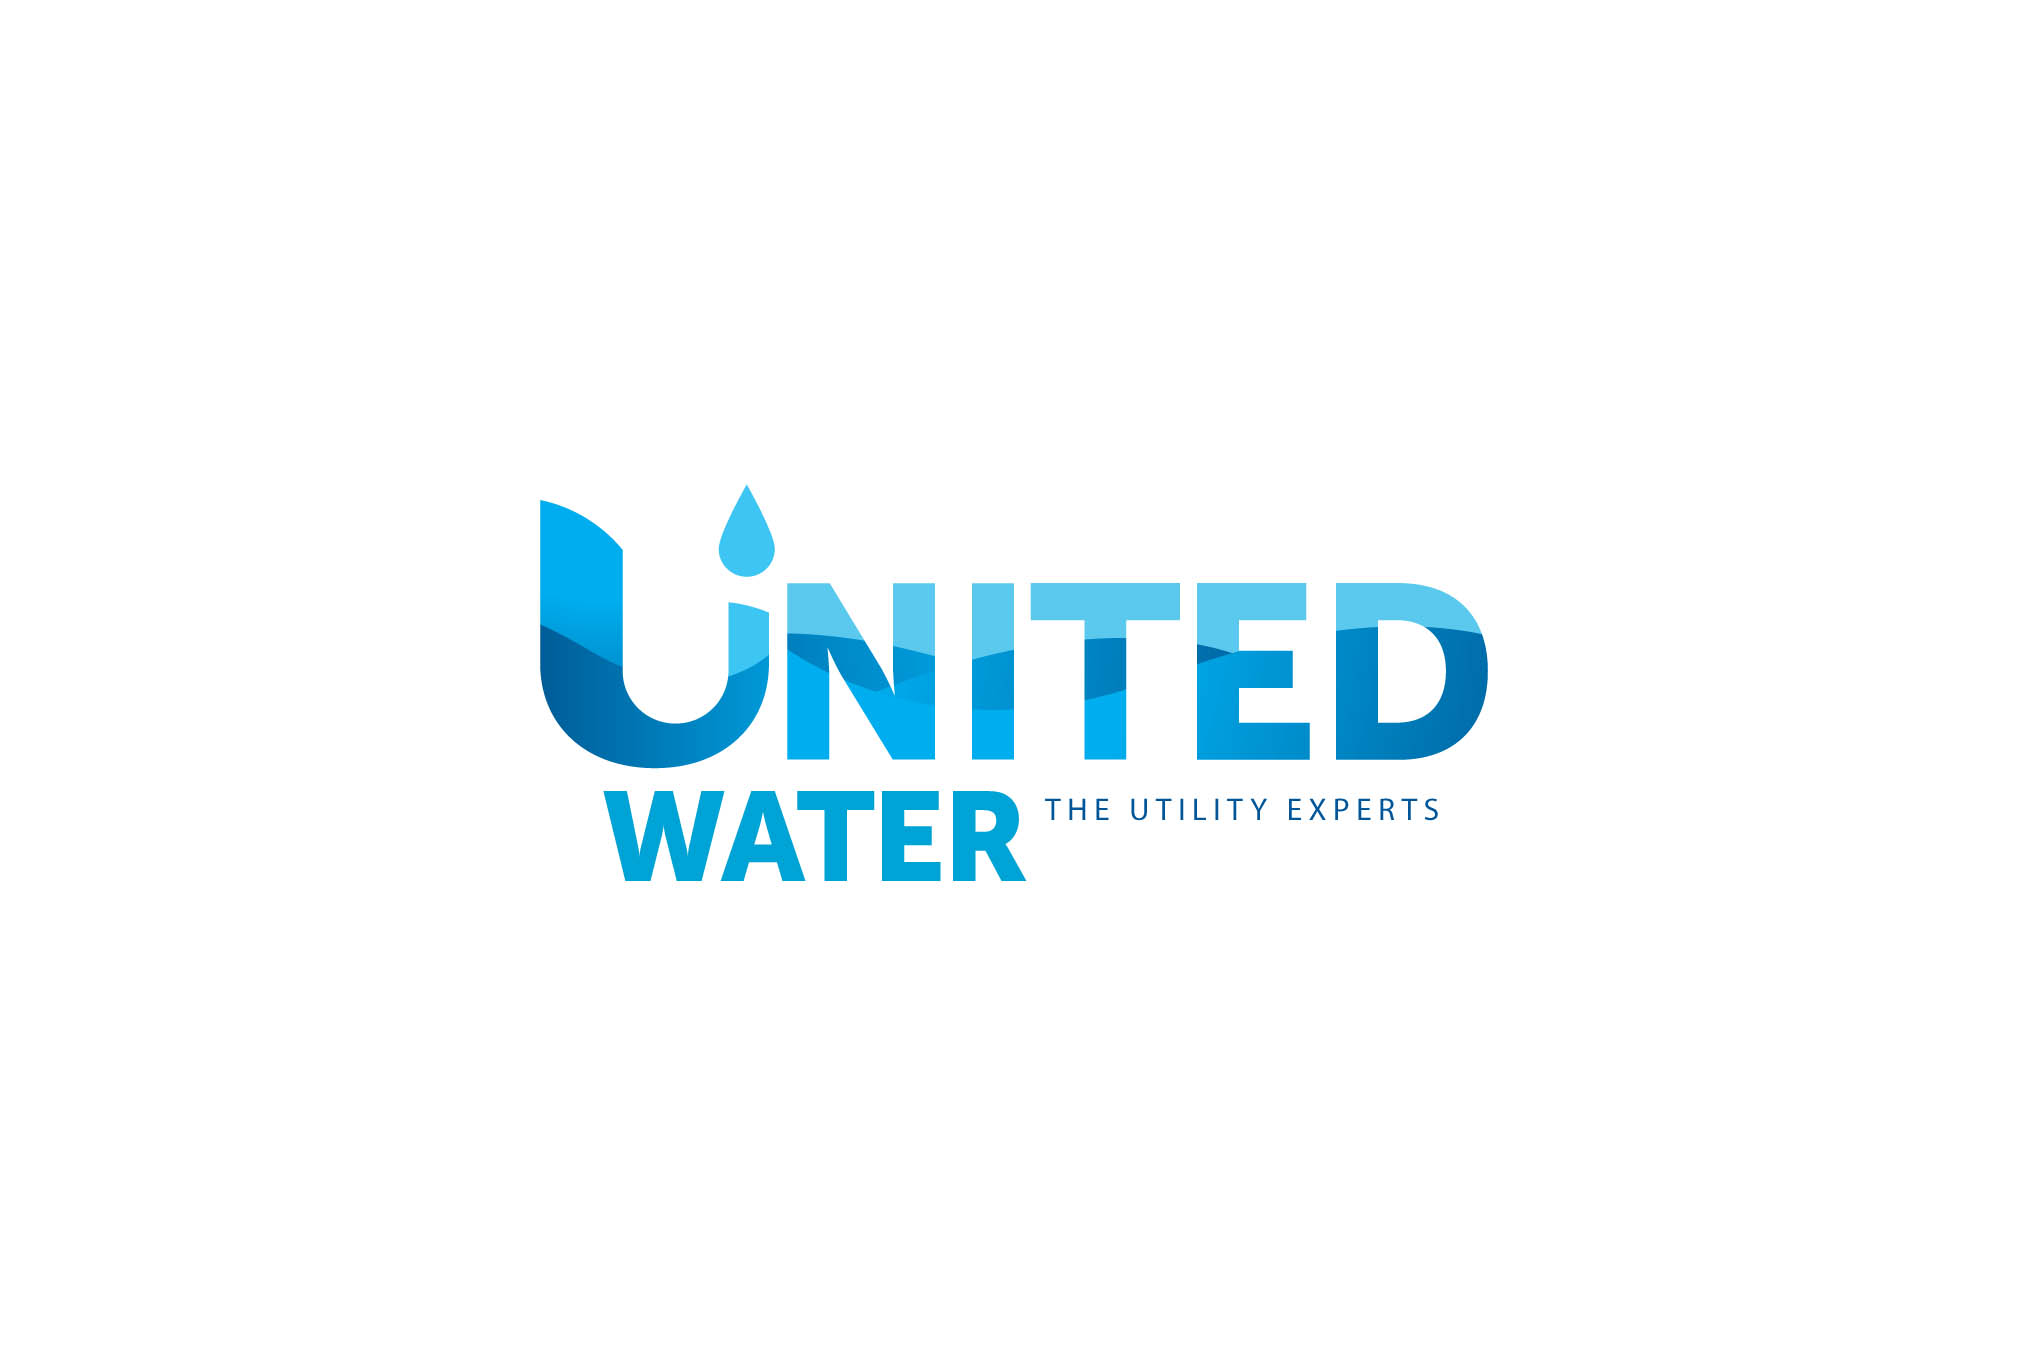 United Waters